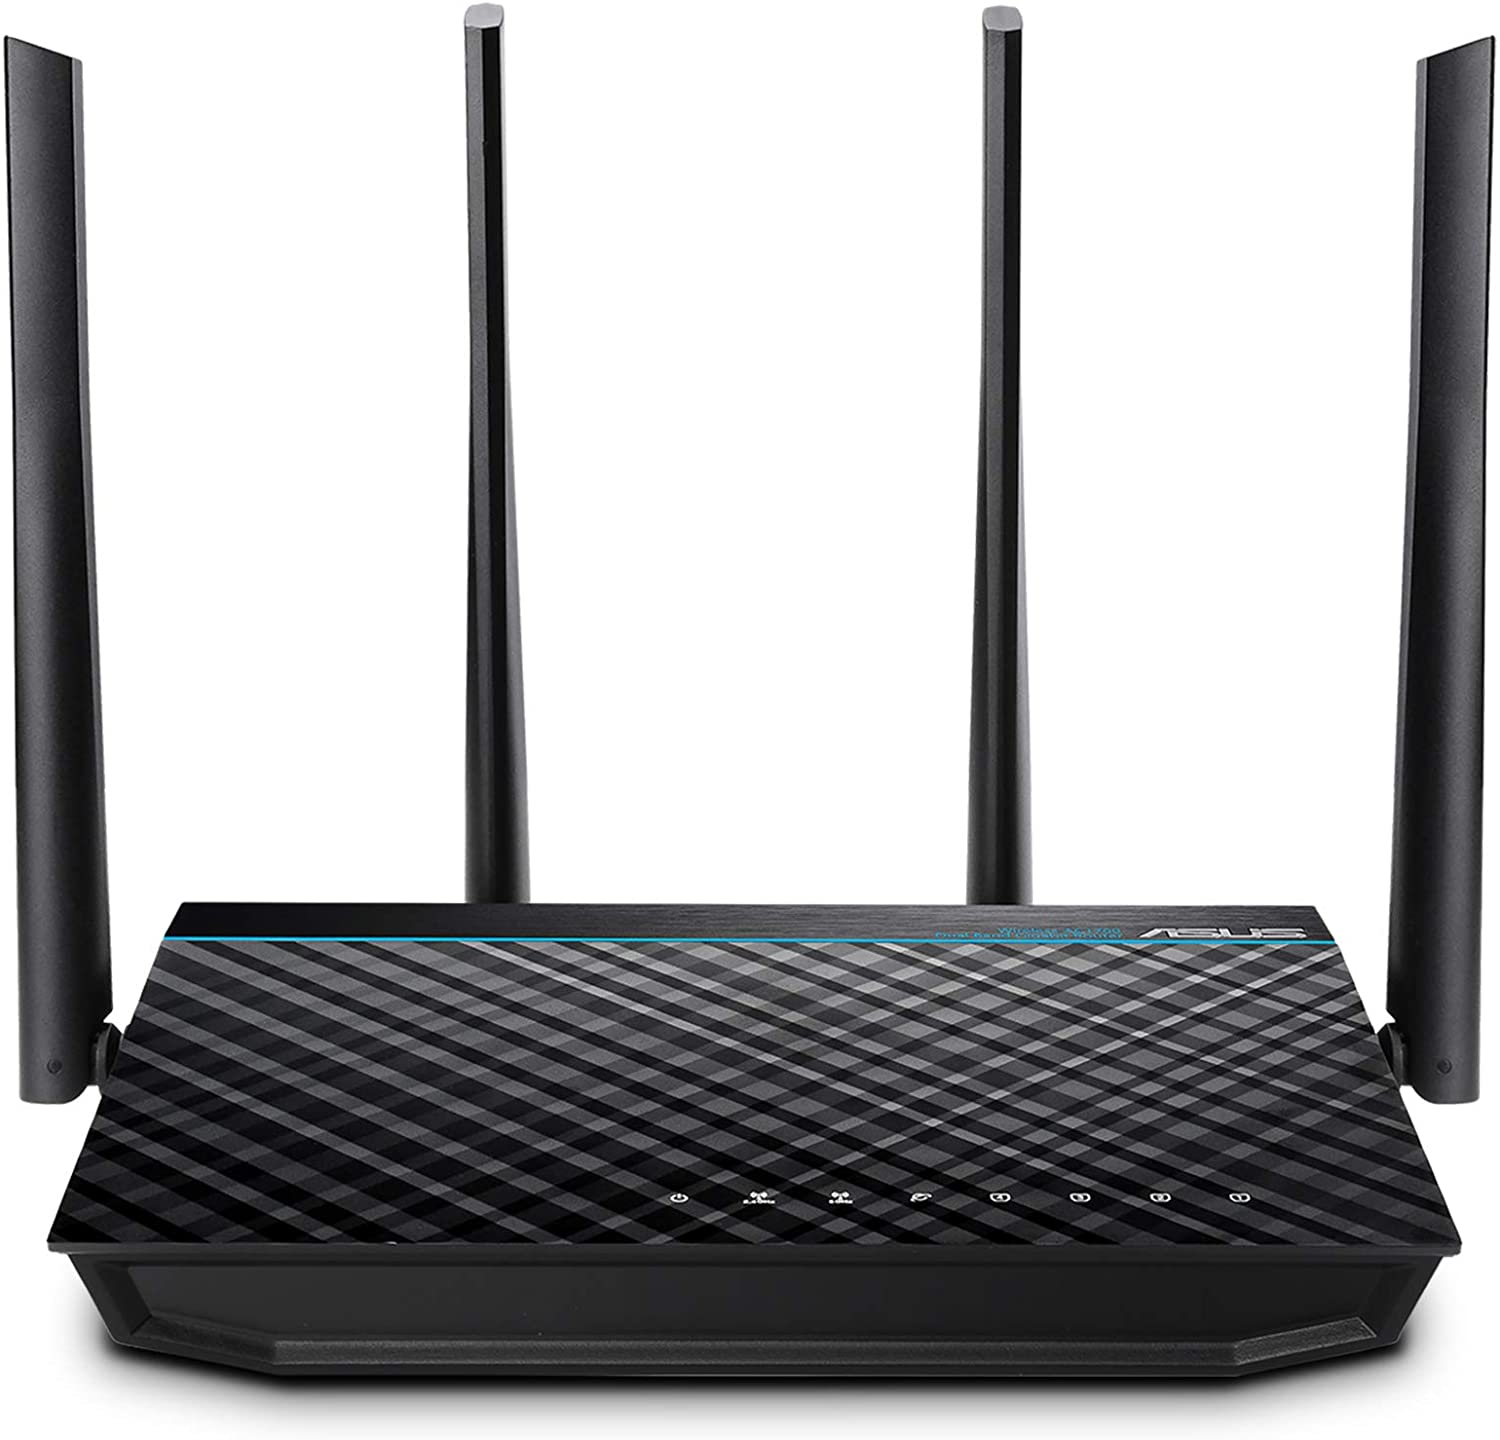 ASUS Wireless-AC1700 Dual-Band Gigabit Router